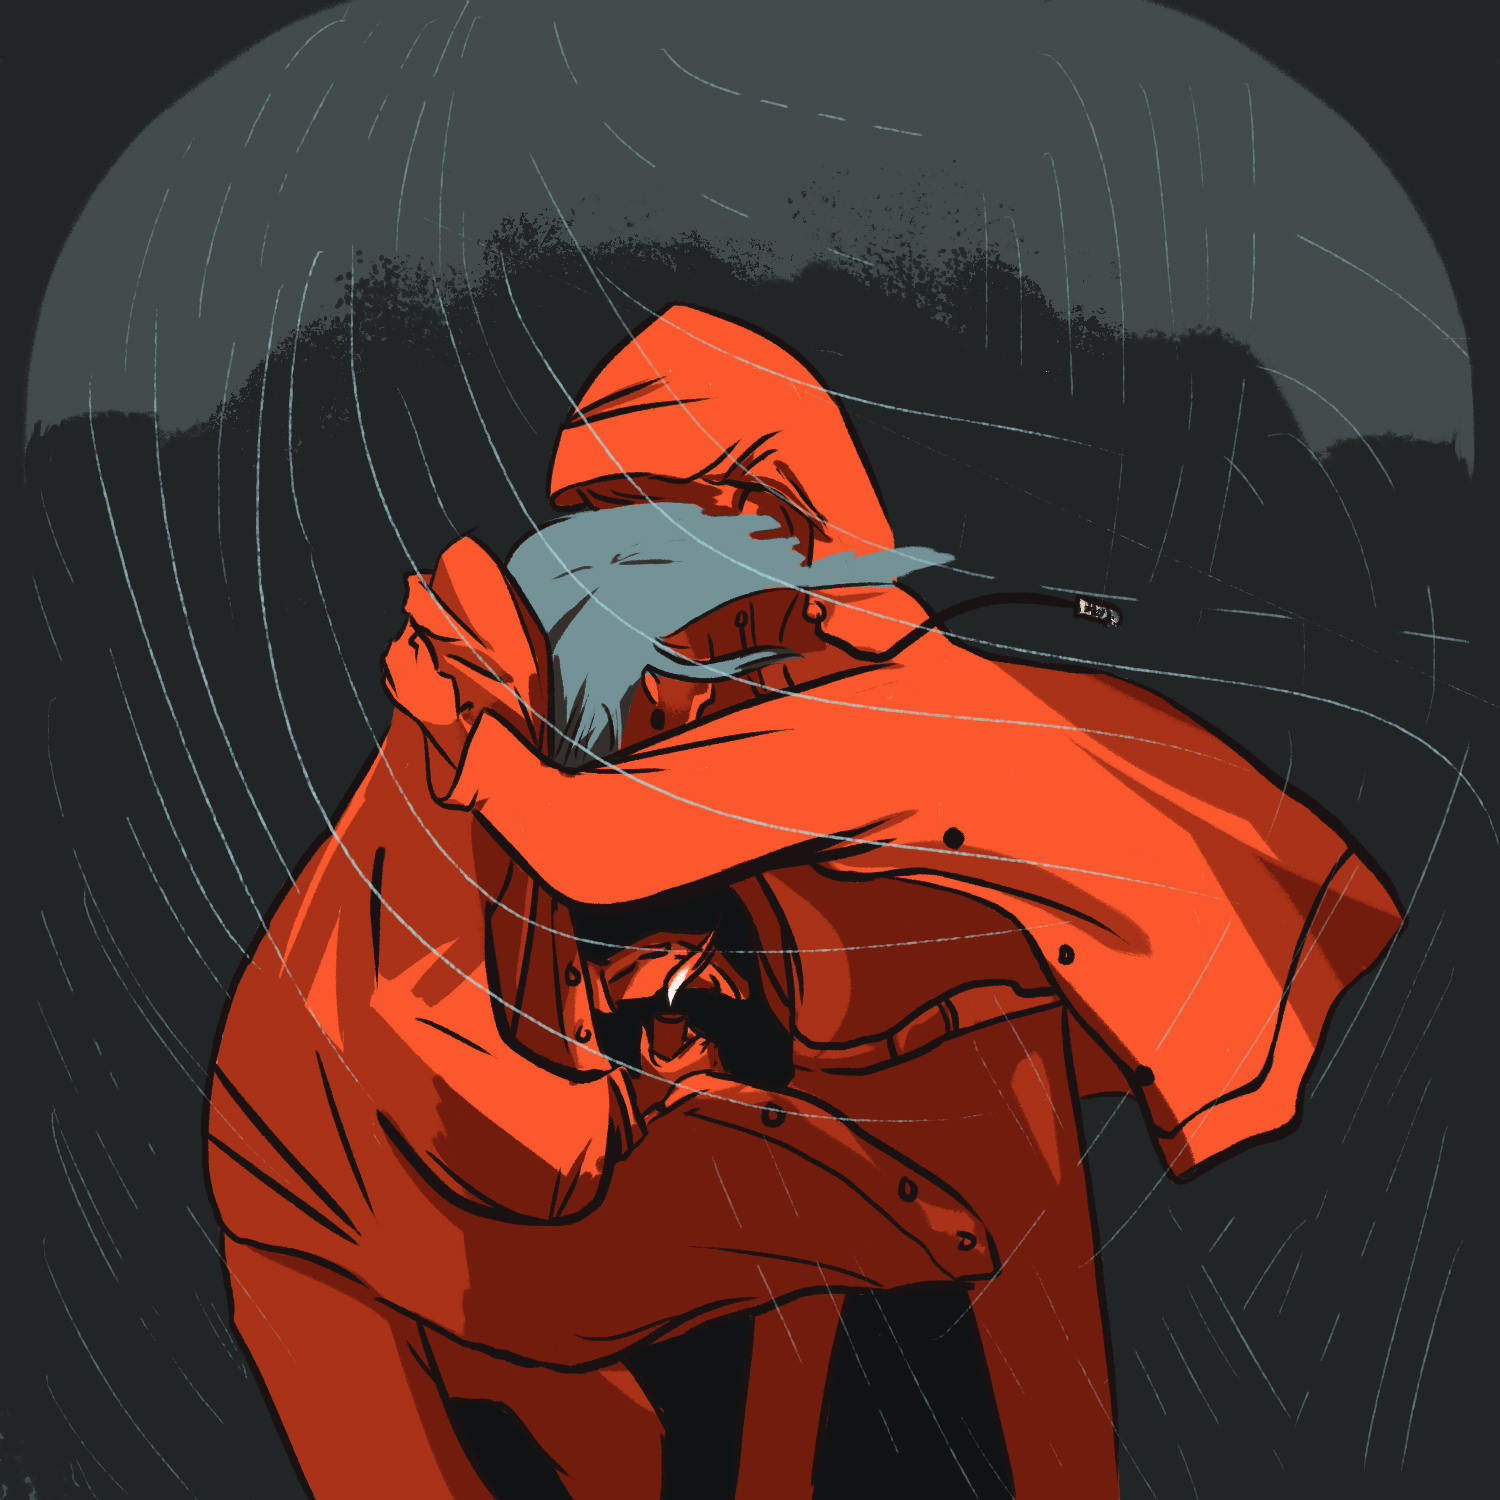 Digital illustration of two figures holding each other in a storm. One holds a candle.